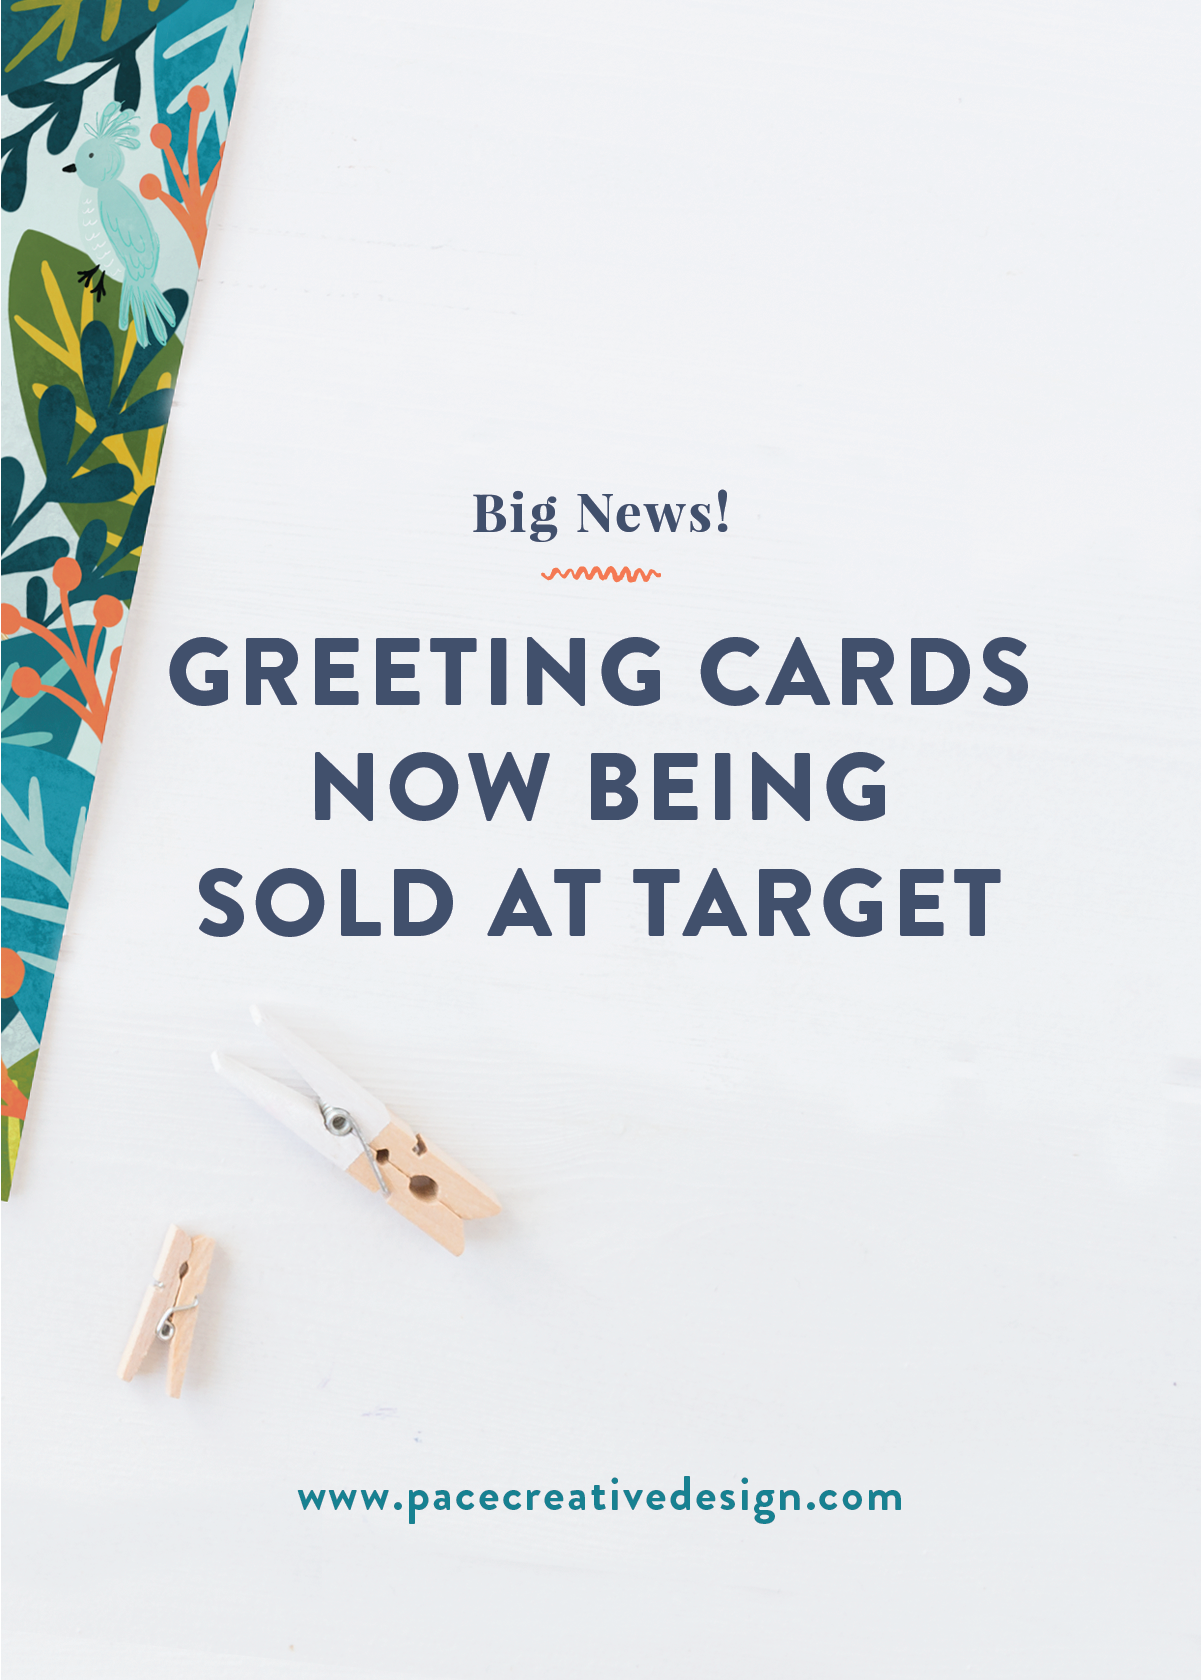 Birthday Greeting Cards Sold At Target